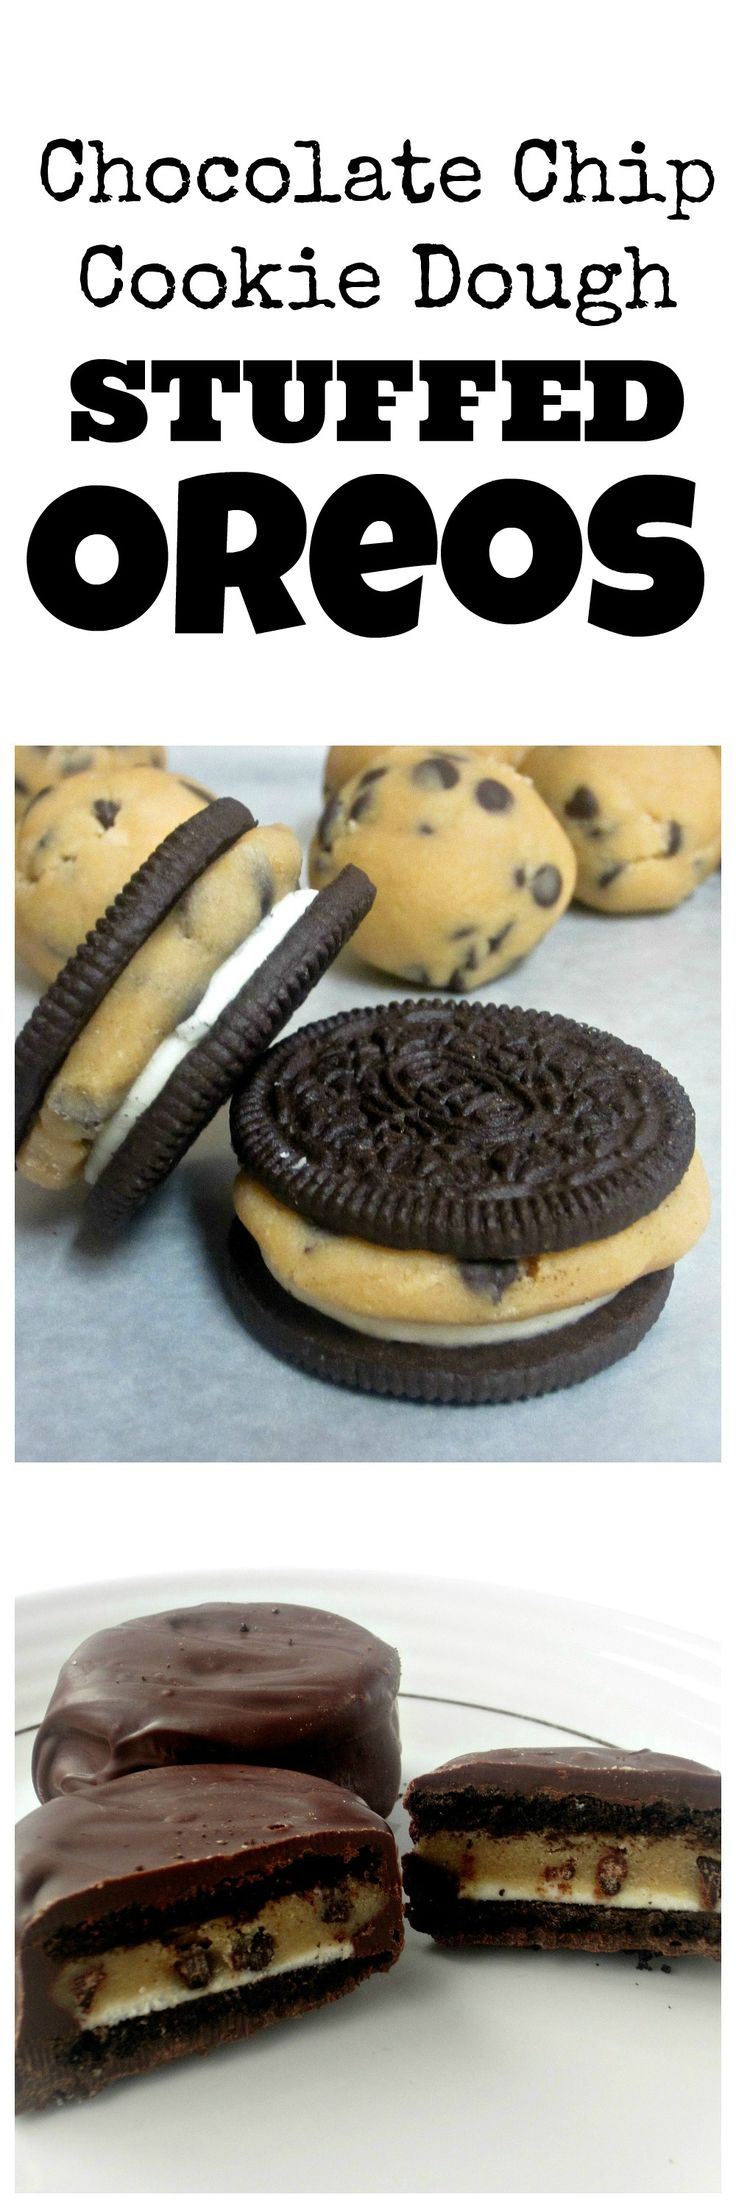 Chocolate Chip Cookie Dough Stuffed Oreos- OH MY! YUM! My 2 biggest desert temptations together! Uh-oh...